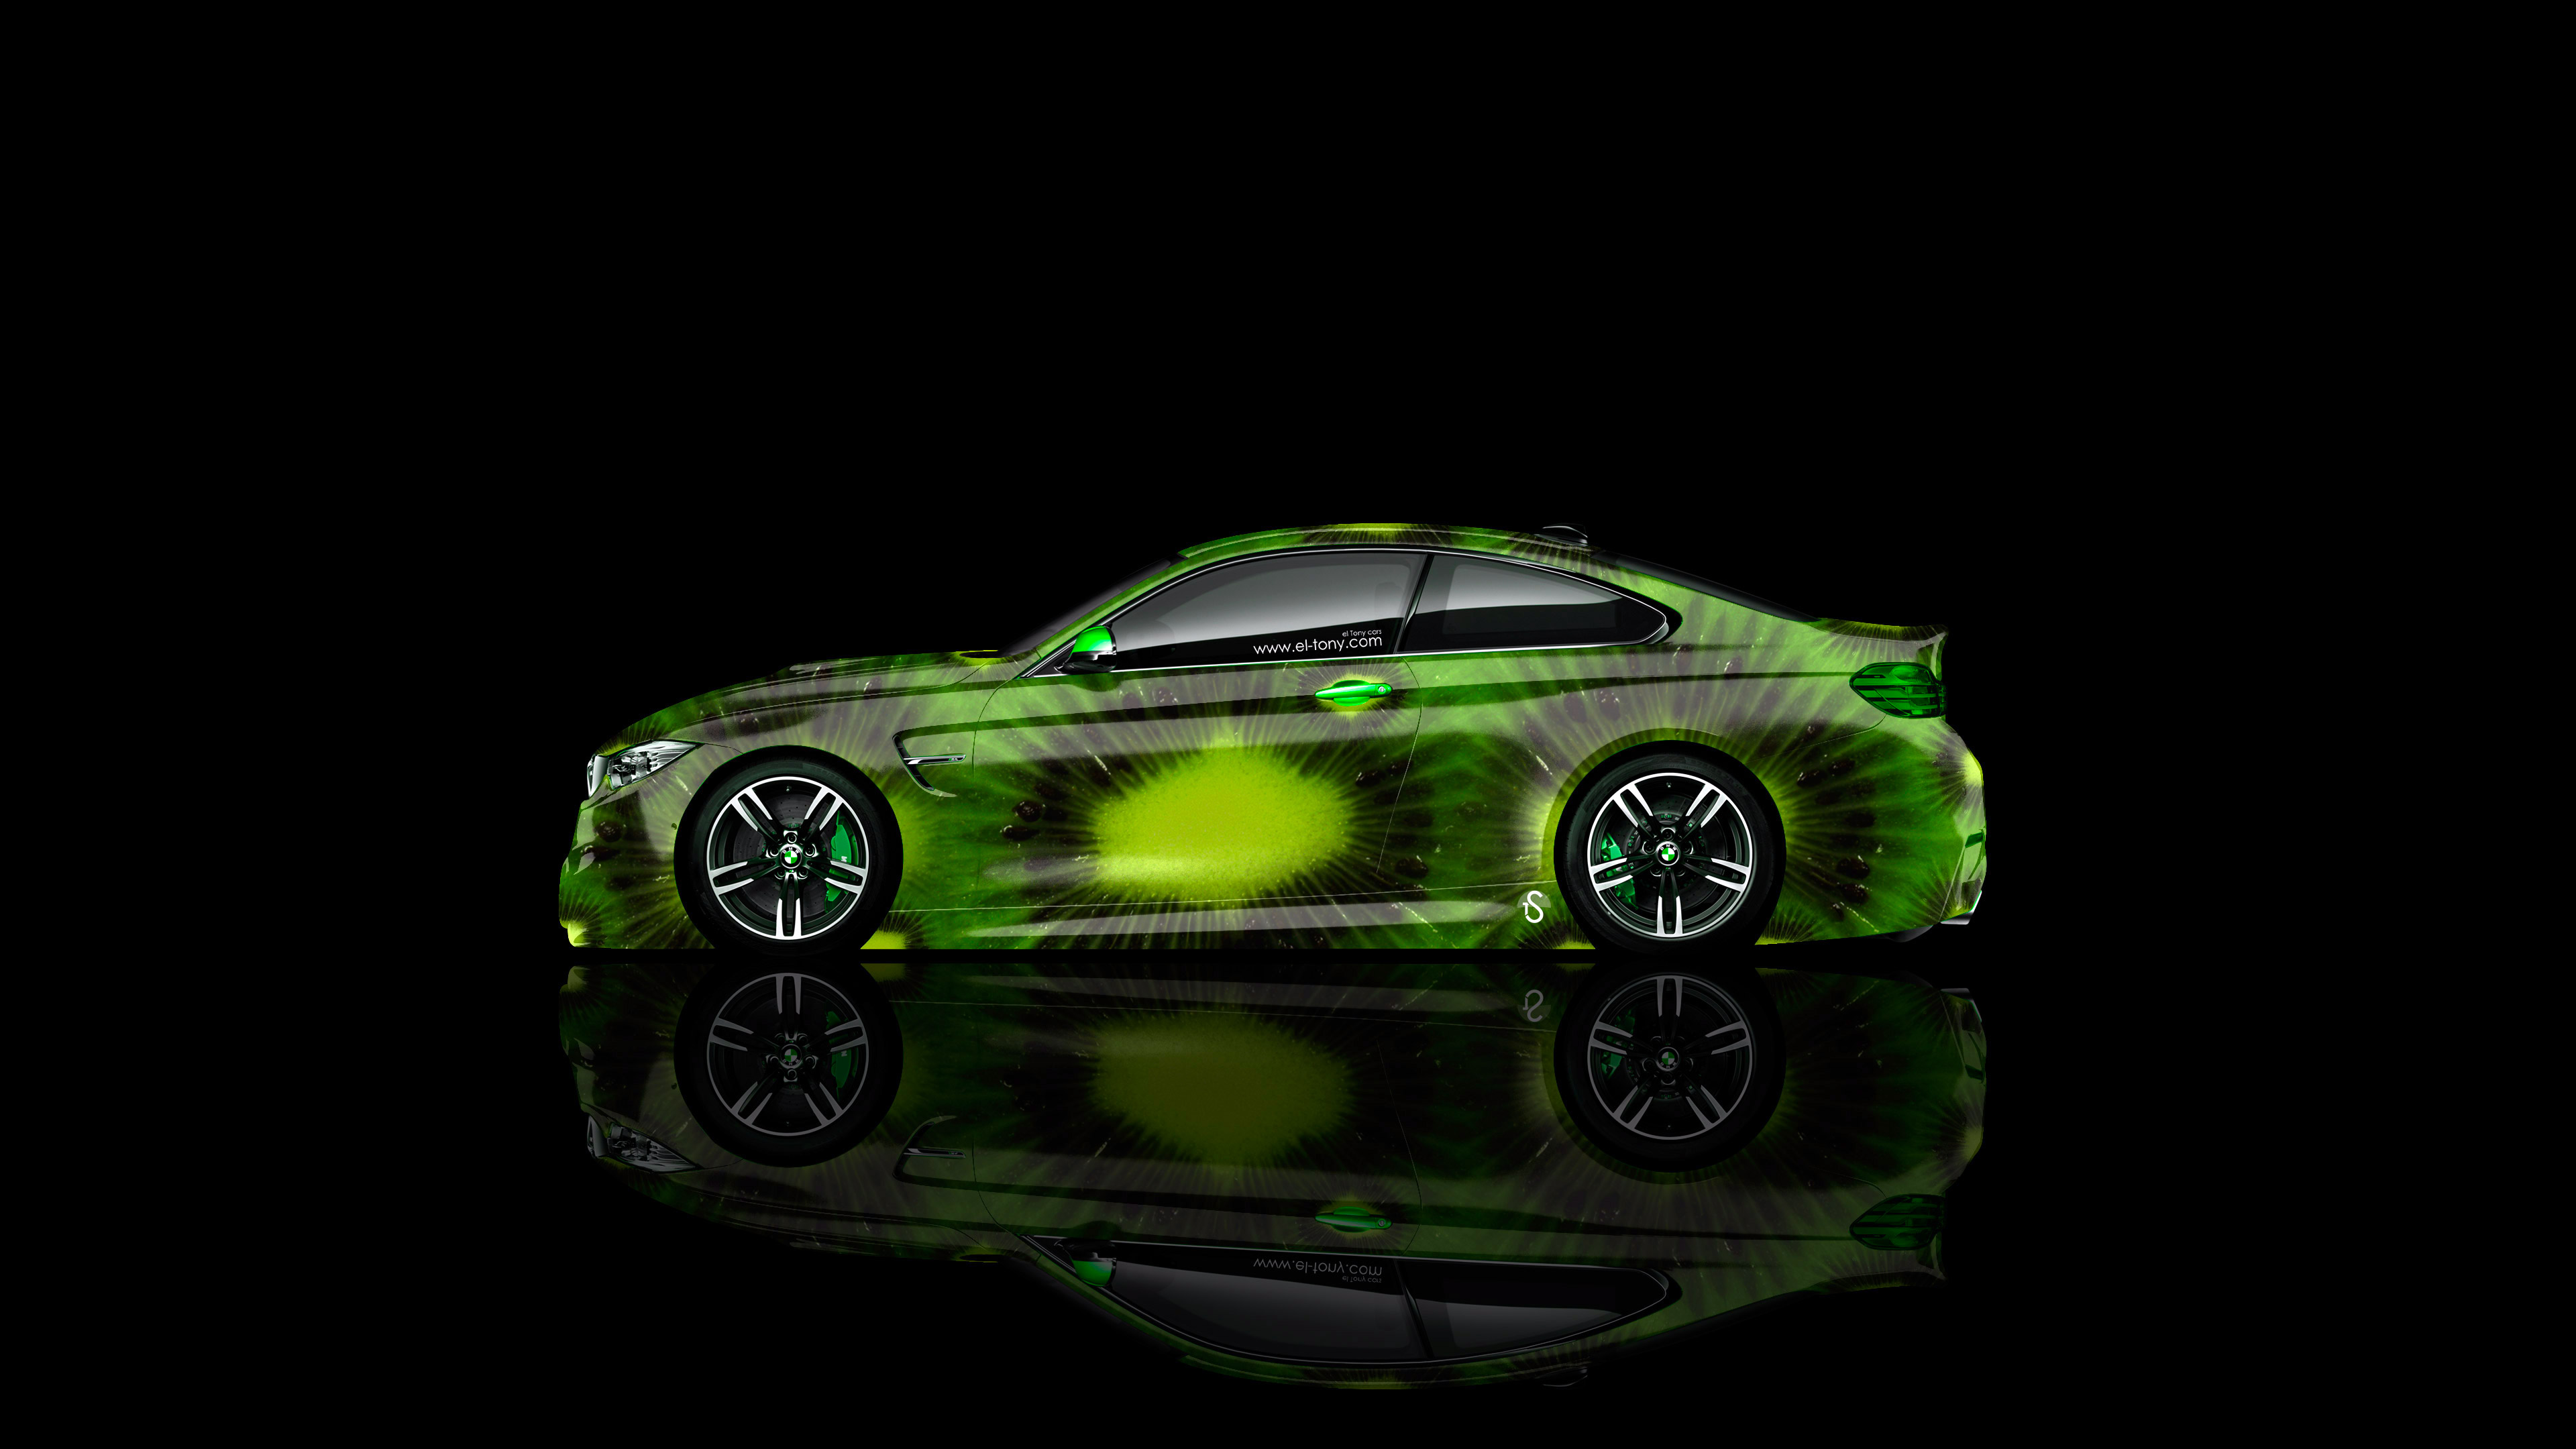 BMW-M4-Coupe-Side-Kiwi-Aerography-Car-2014-Green-Colors-4K-Wallpapers-design-by-Tony-Kokhan-[www.el-tony.com]